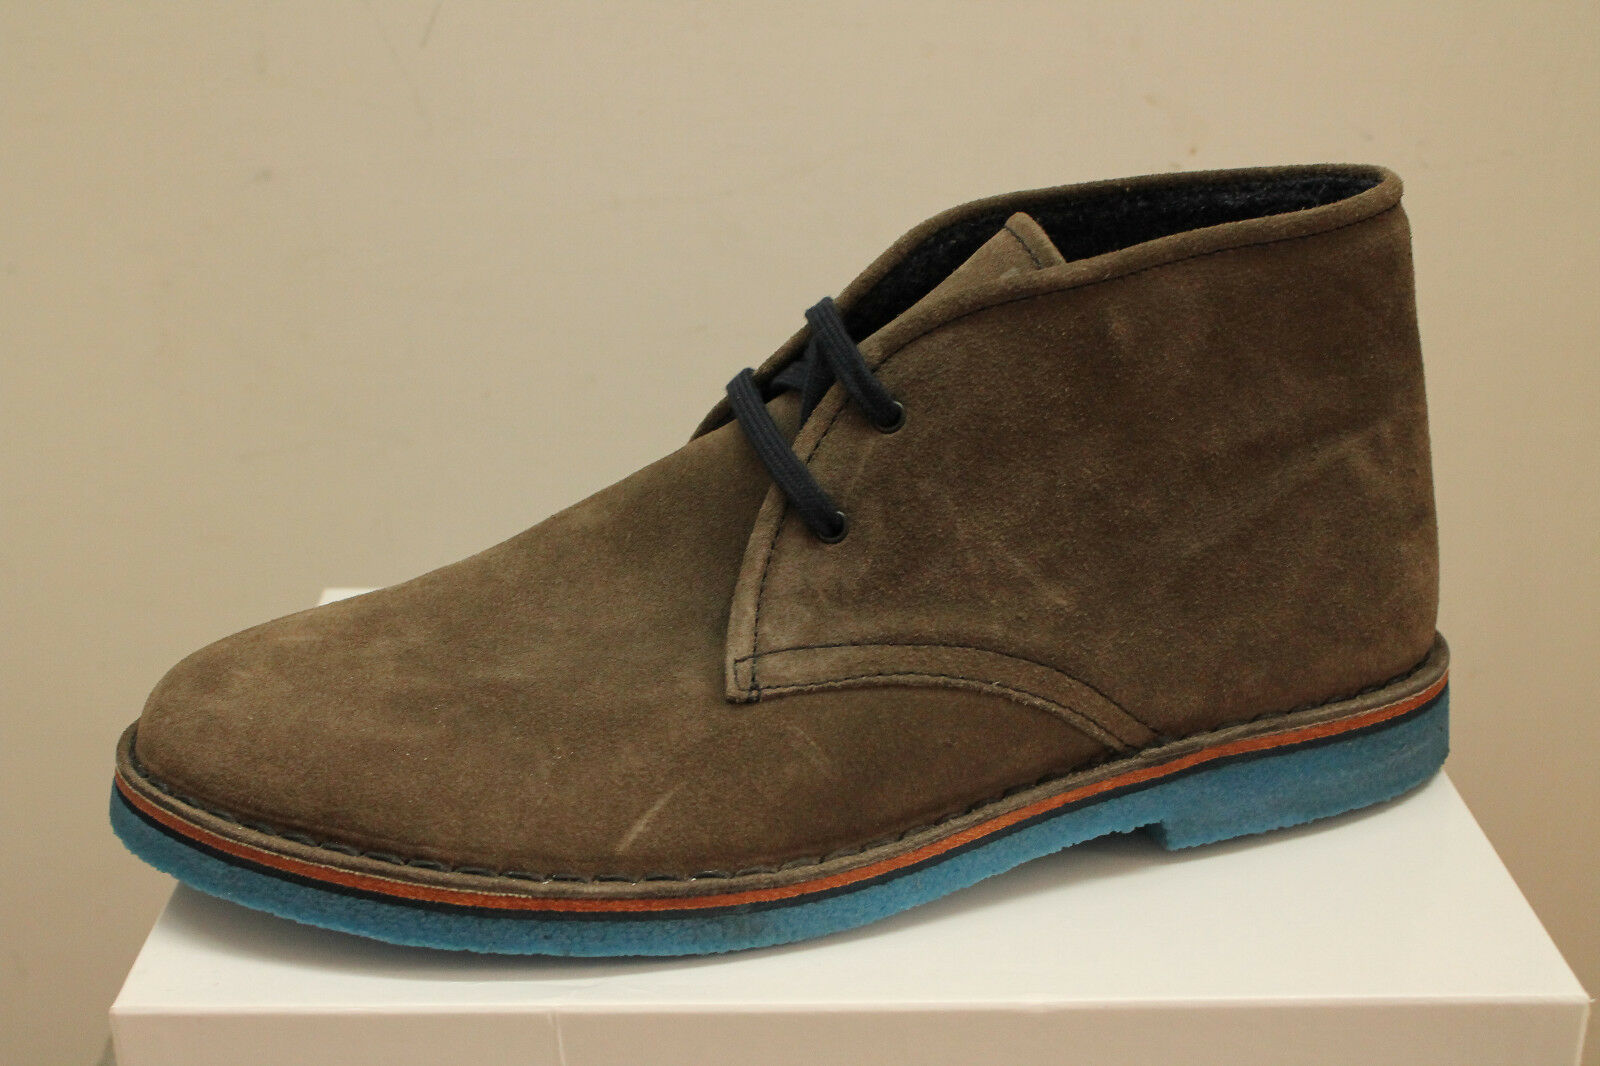 Polacchini scarponcini Frau 25H3 list fumo tipo Clarks Made in Italy list 25H3 €95 - 20% 73cd87